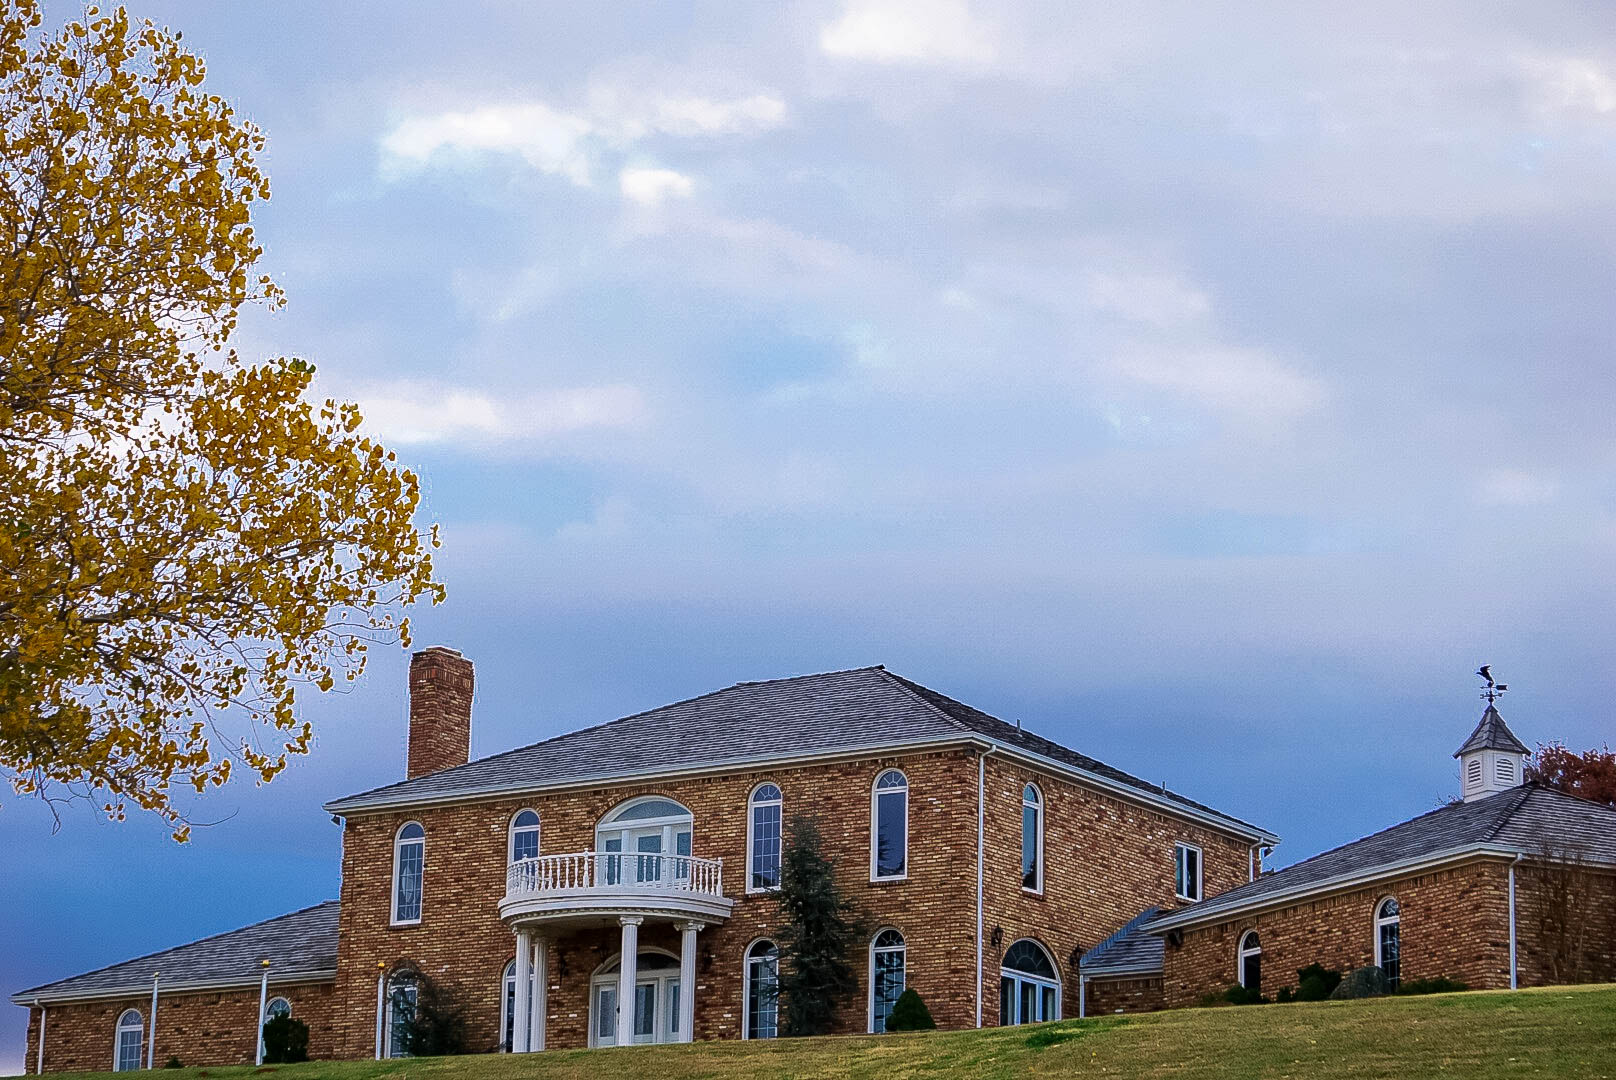 The Ridge is a stately 4-bedroom, 6-bathroom estate. Beautifully decorated and located, the Ridge, a ministry of Oakridge, is a one-of-a-kind conference or event experience.  Check out this link to watch a video of the Ridge: https://www.facebook.com/1443761465743535/videos/1444547778998237/ -